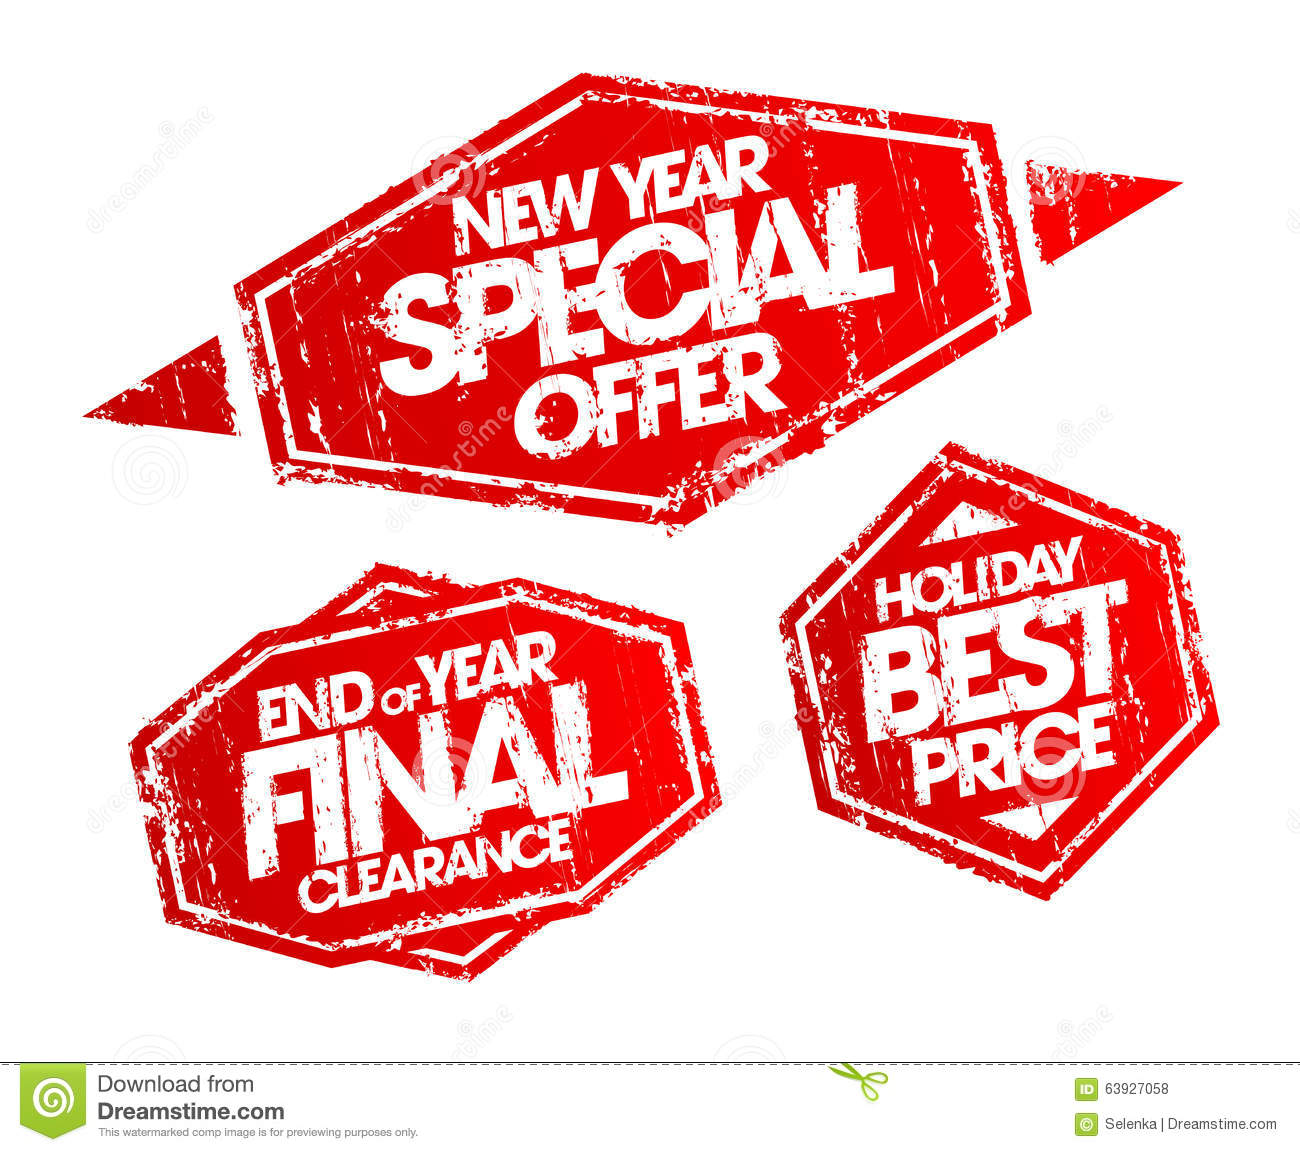 New Year Special Offer Stamp, End Of Year Final Clearance Stamp ...